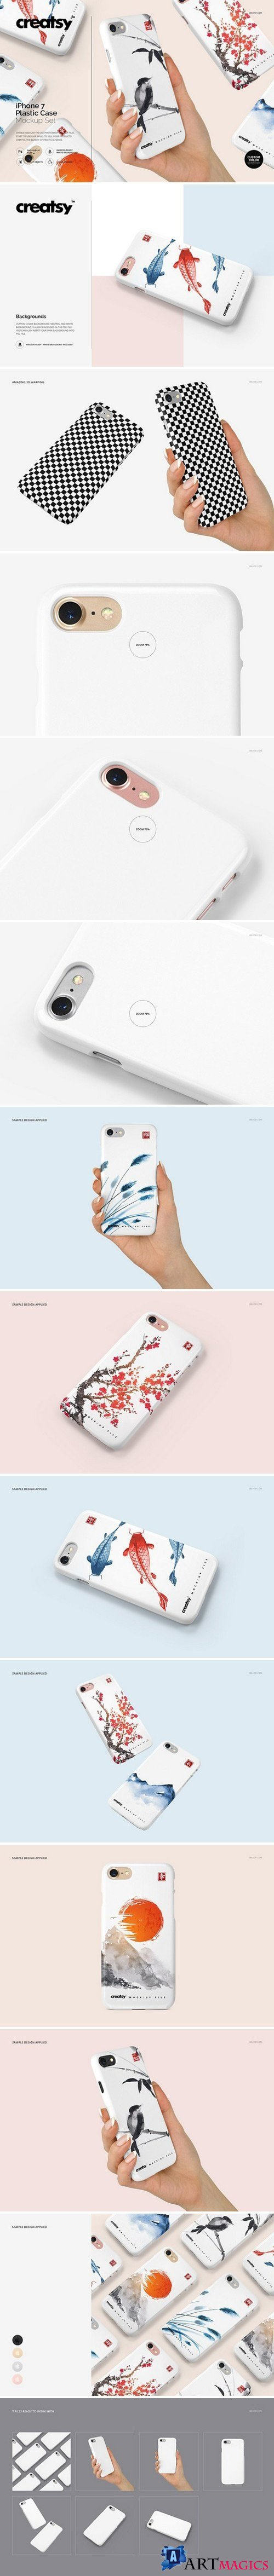 iPhone 7 Plastic Case Mockup Set 2088234